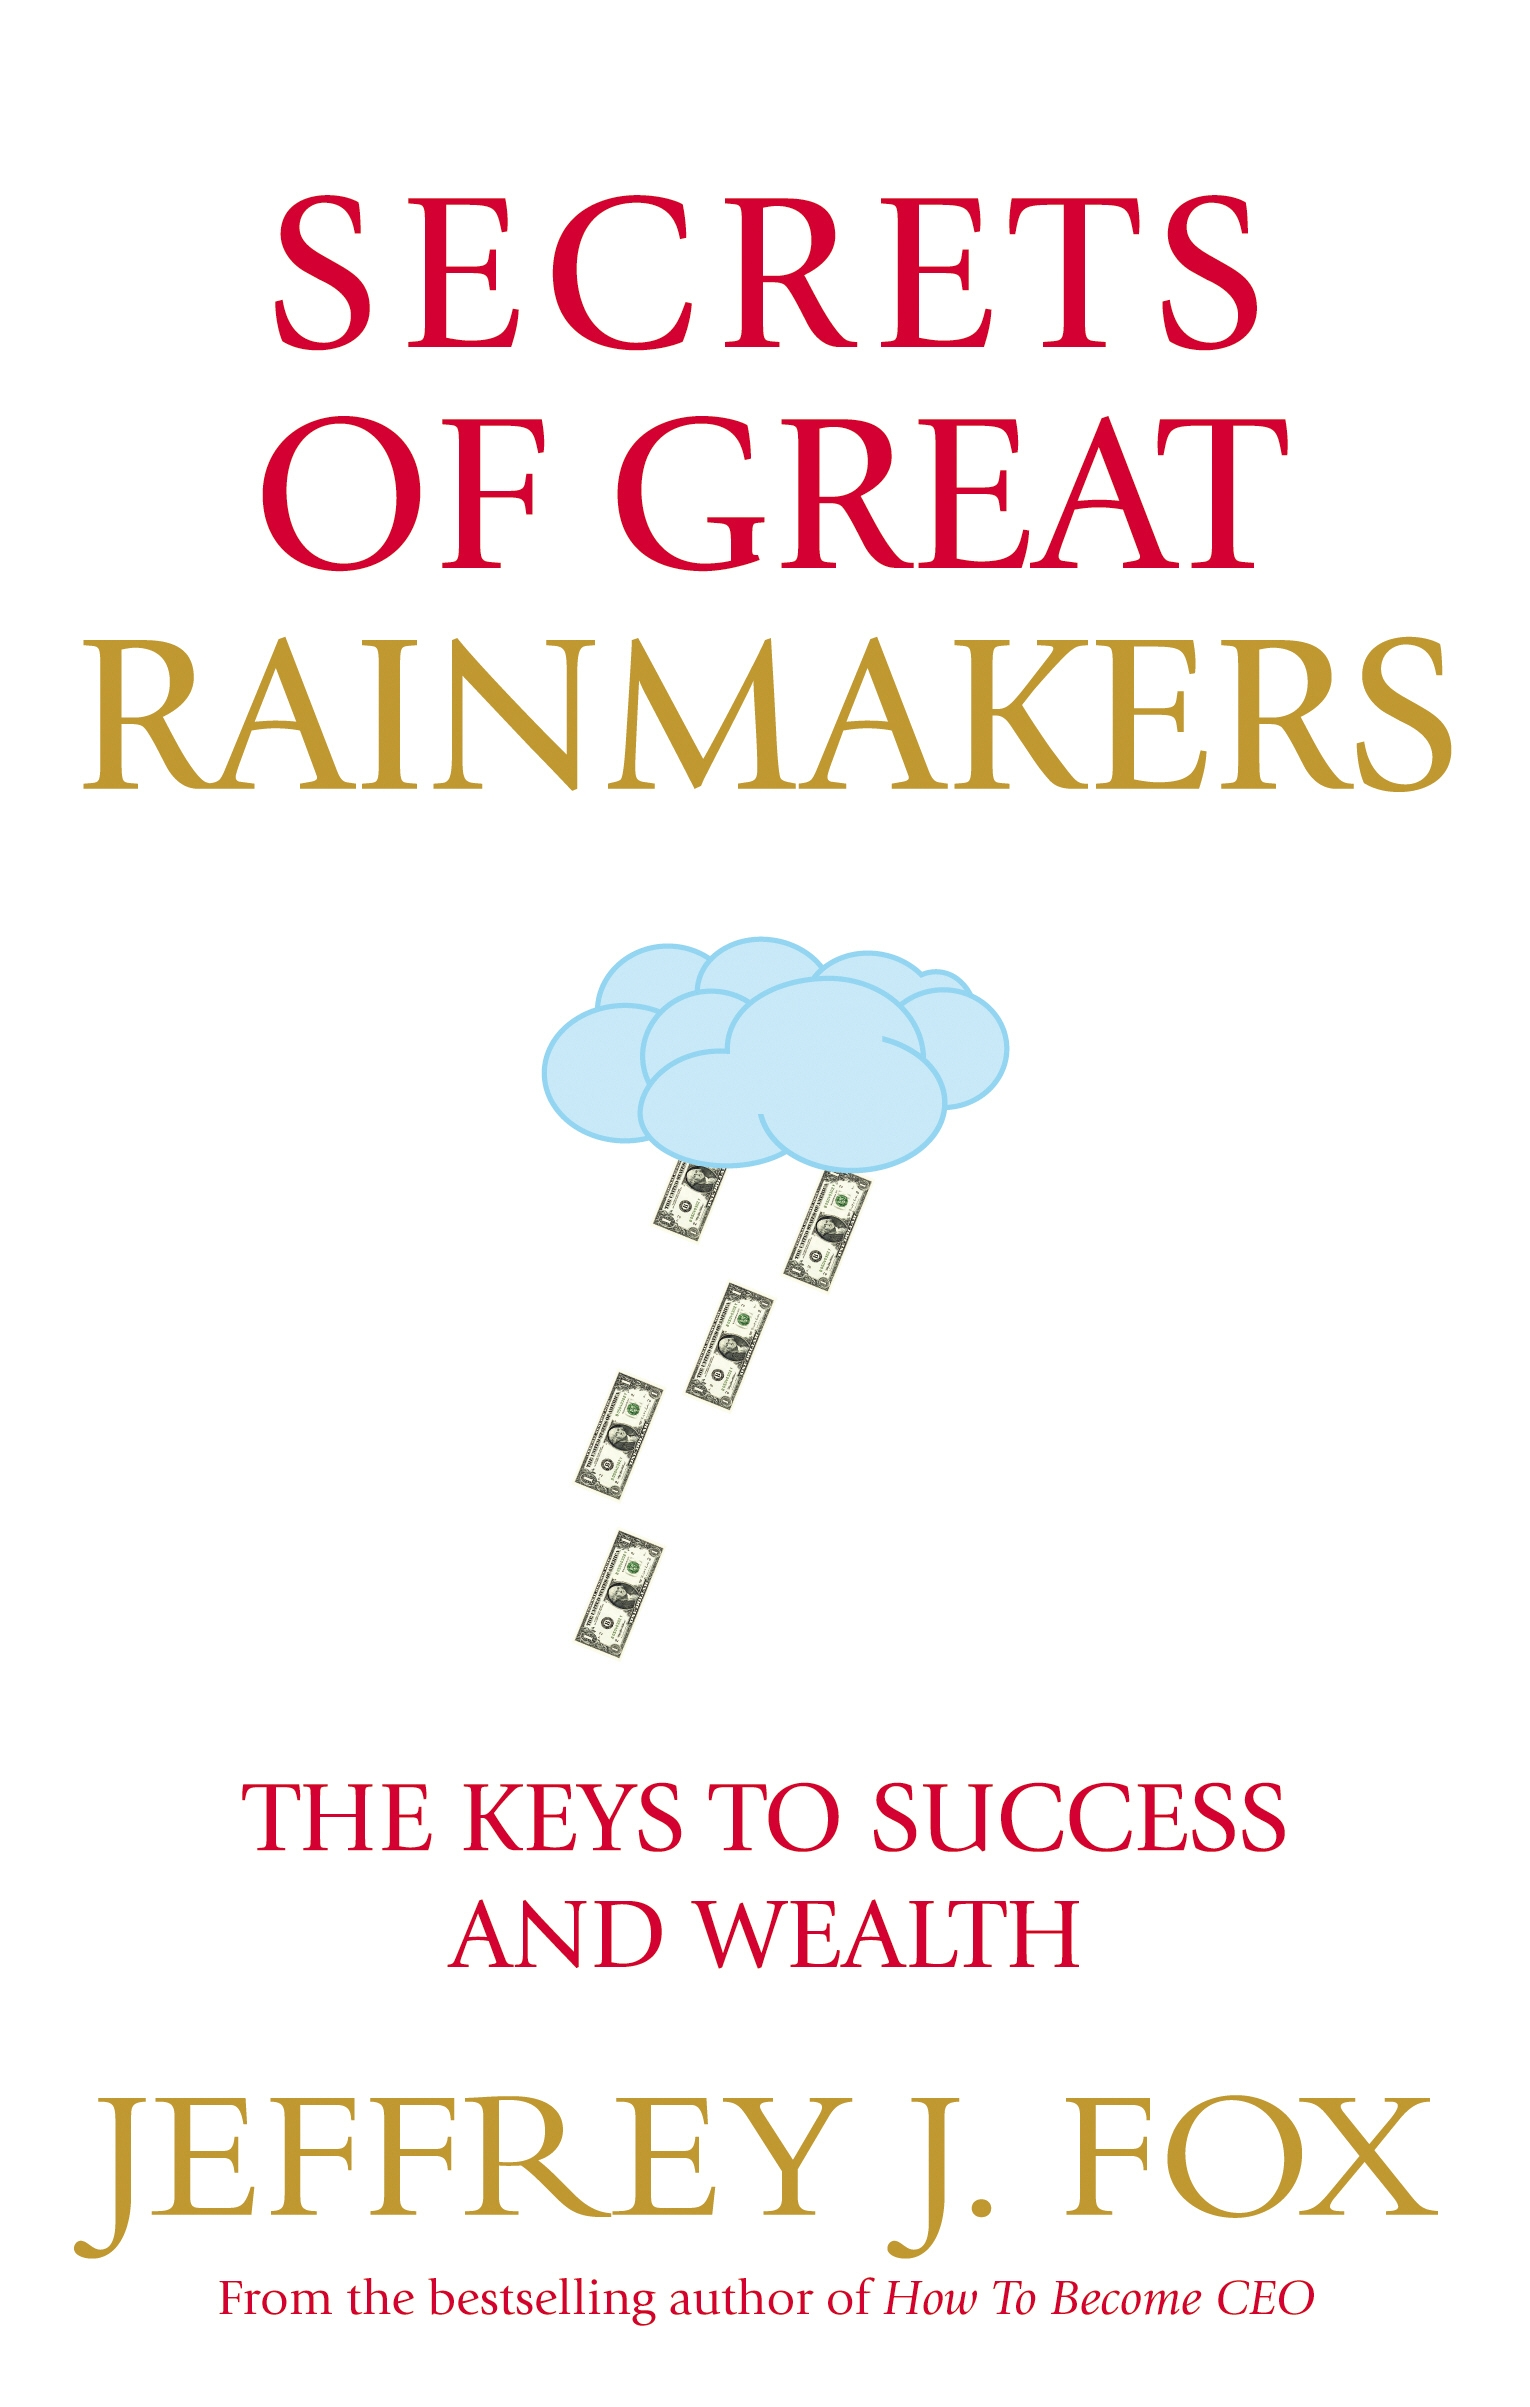 Secrets of Great Rainmakers The Keys to Success and Wealth